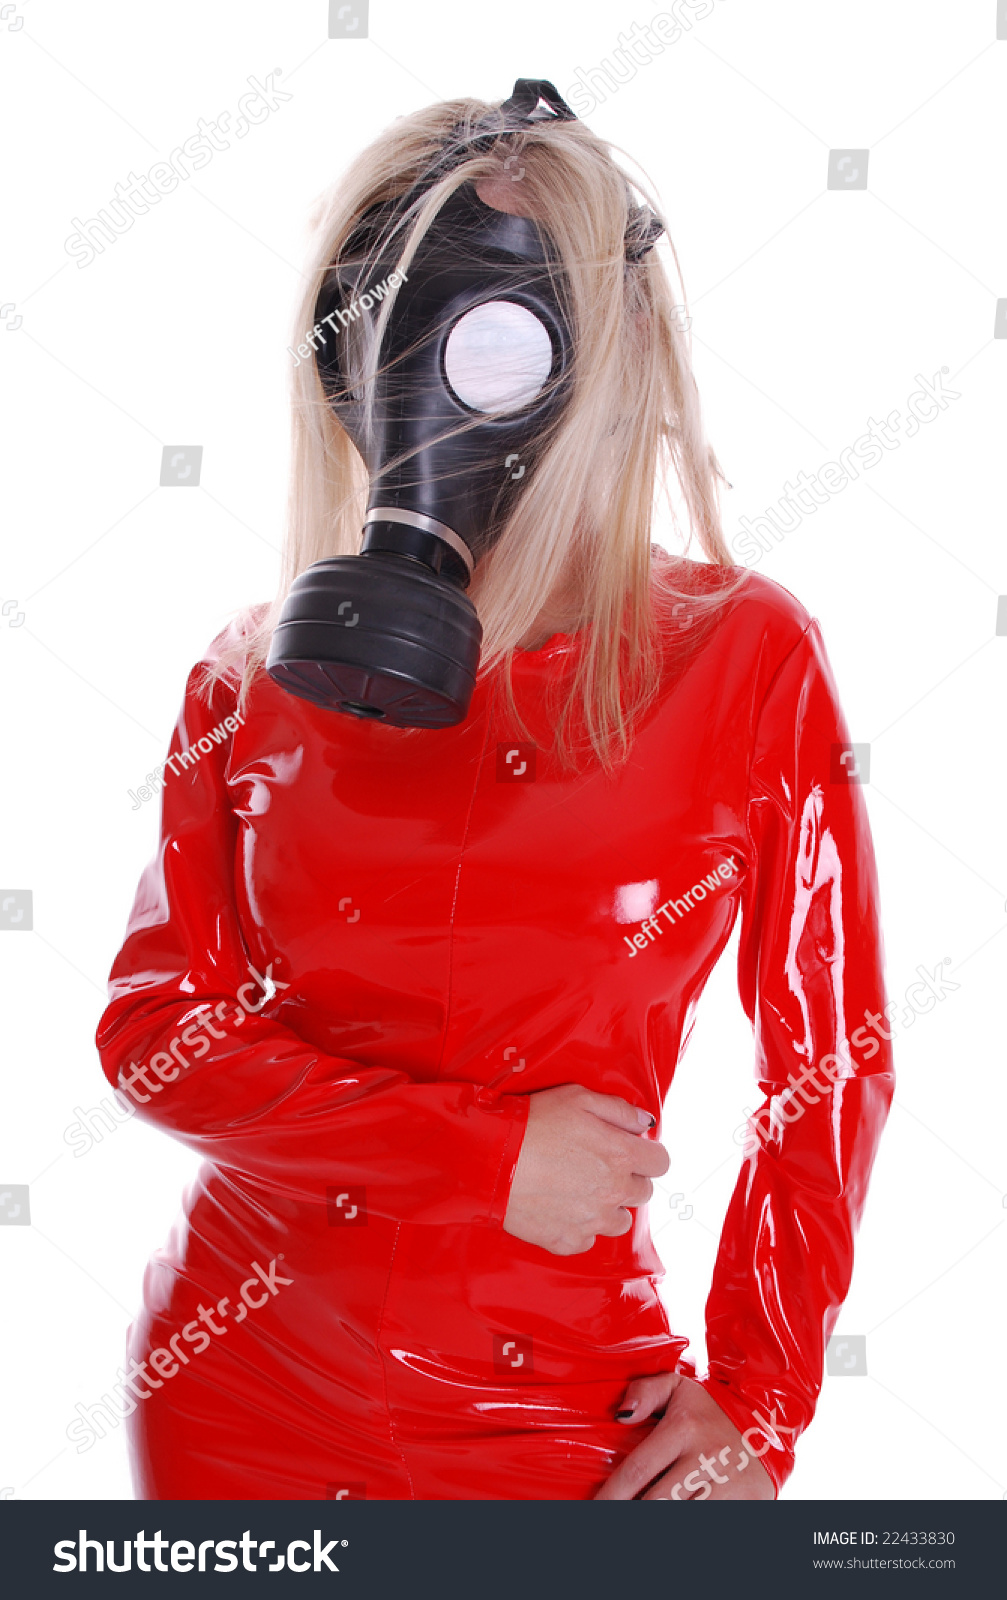 Superior Stock Photo Woman In Gas Mask And Tight Red Suit 22433830